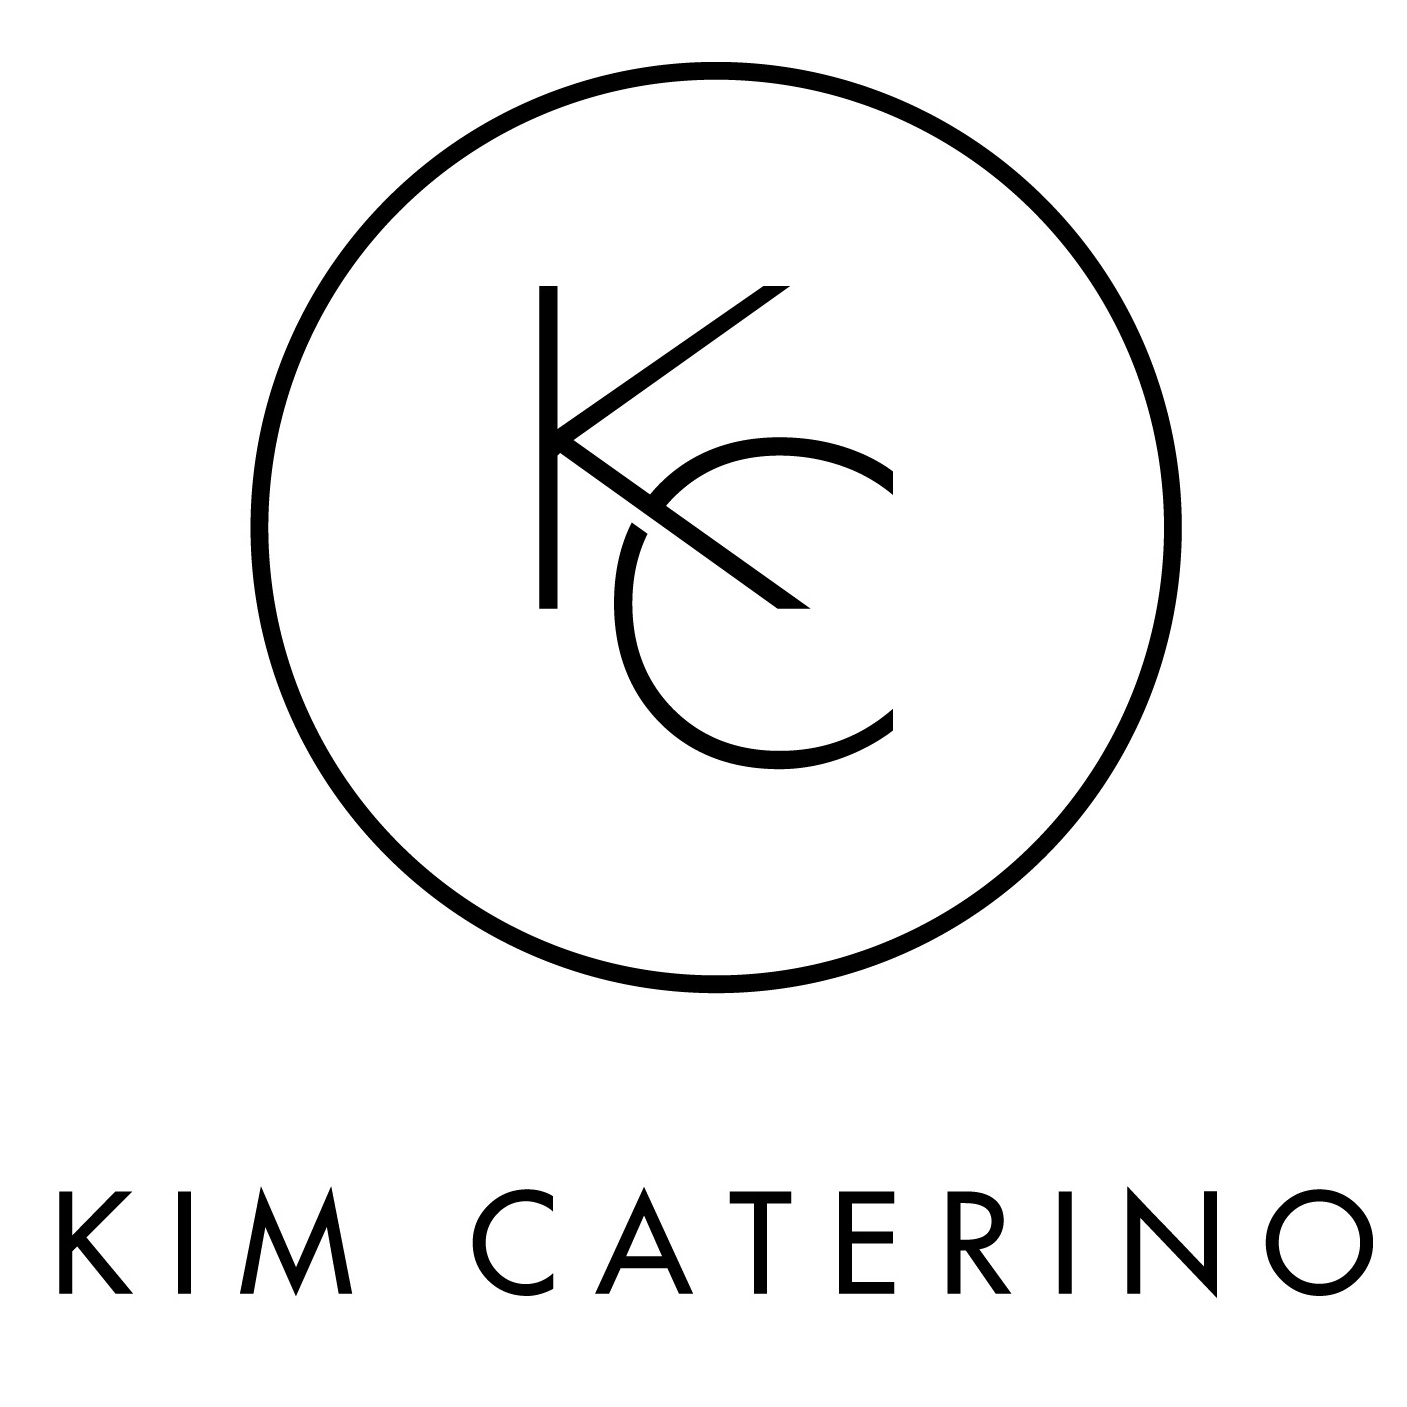 Kim Caterino Napa valley realtor